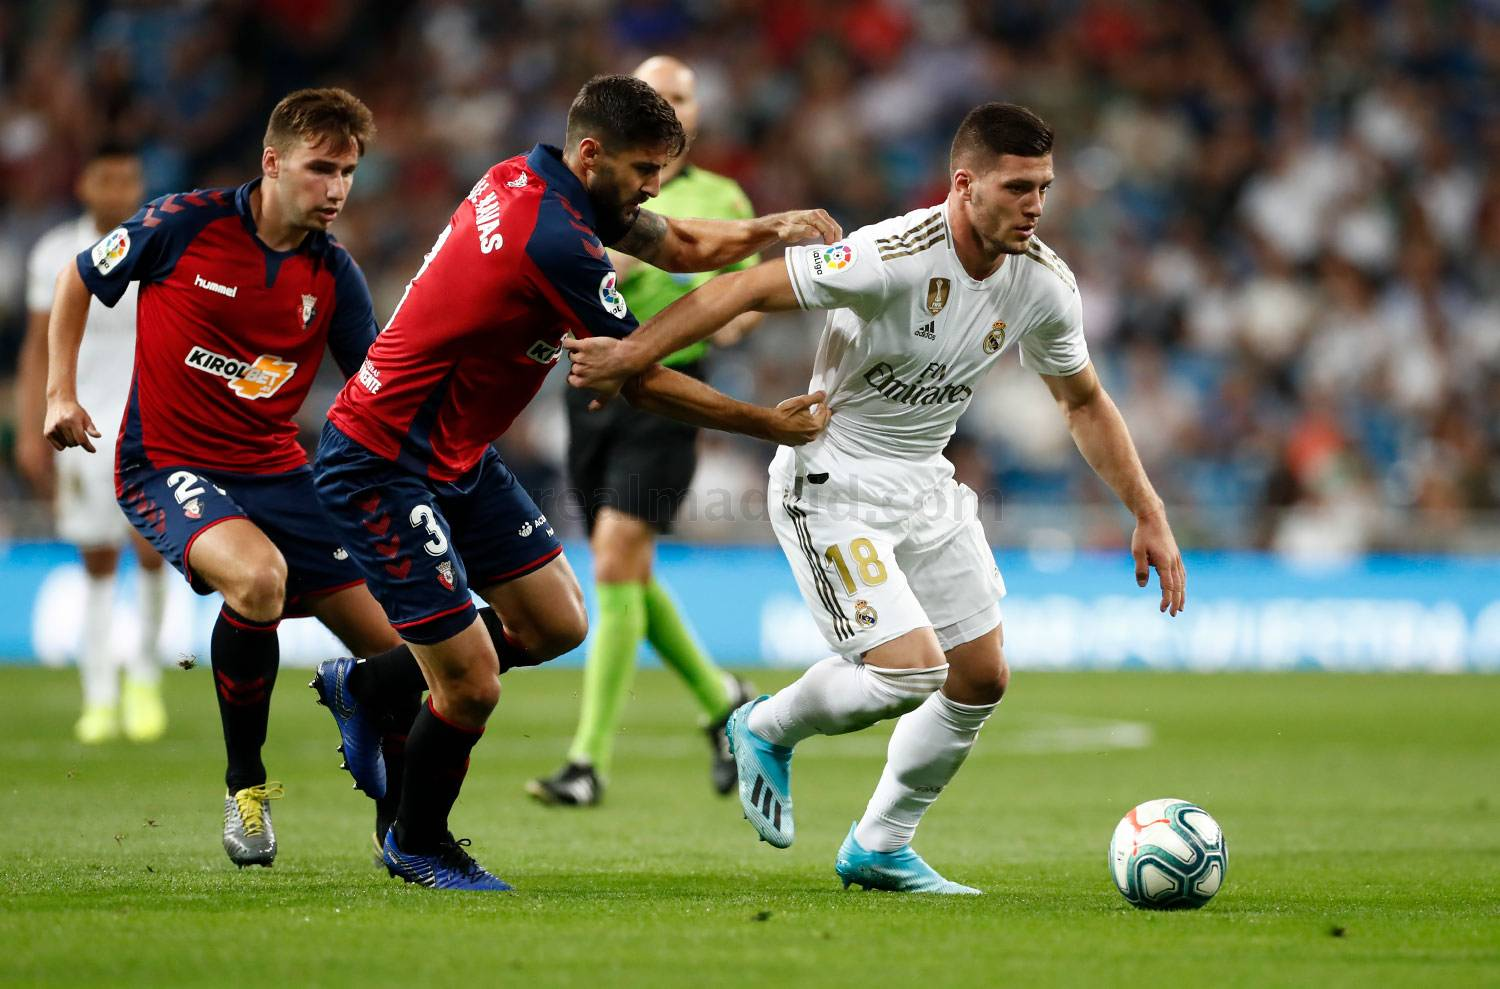 Real Madrid - Real Madrid - Osasuna - 25-09-2019